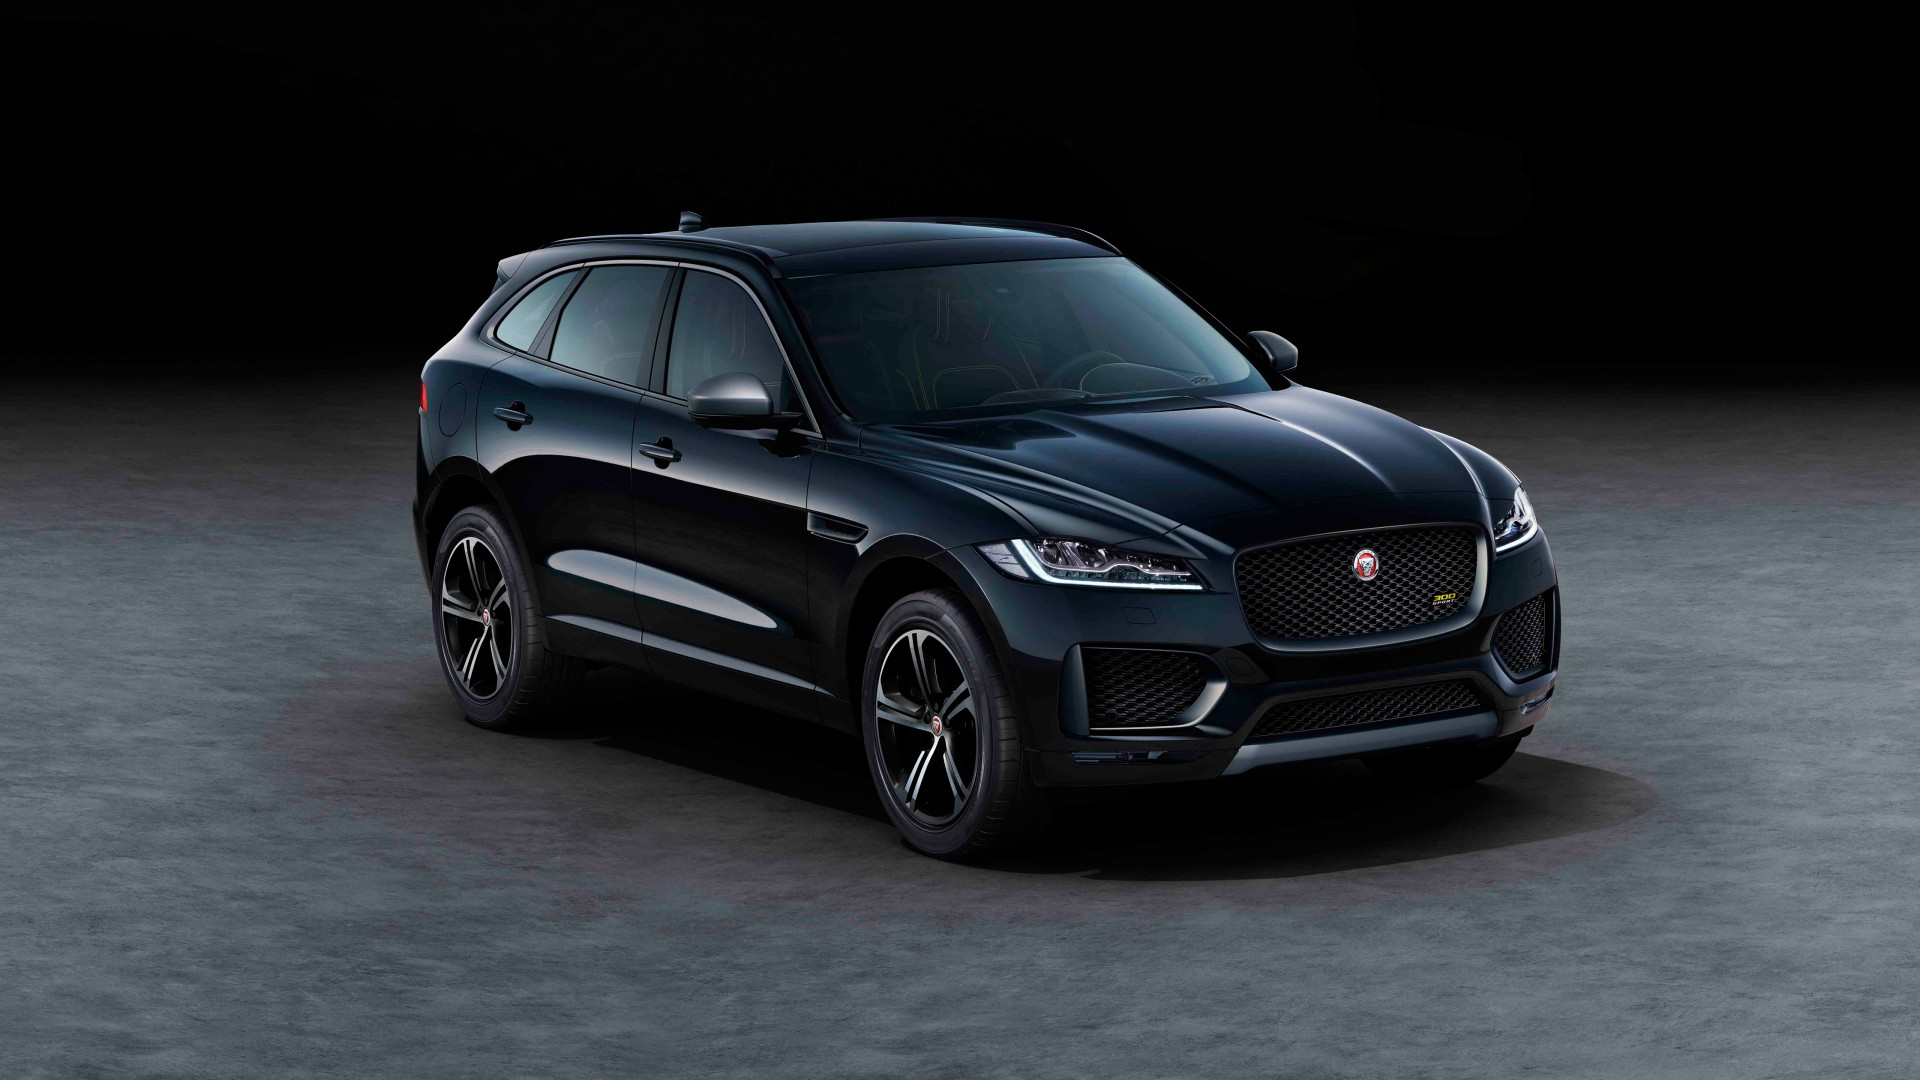 F Type Coupe >> Jaguar F-Pace 300 Sport 2019 4K Wallpaper | HD Car Wallpapers | ID #12285